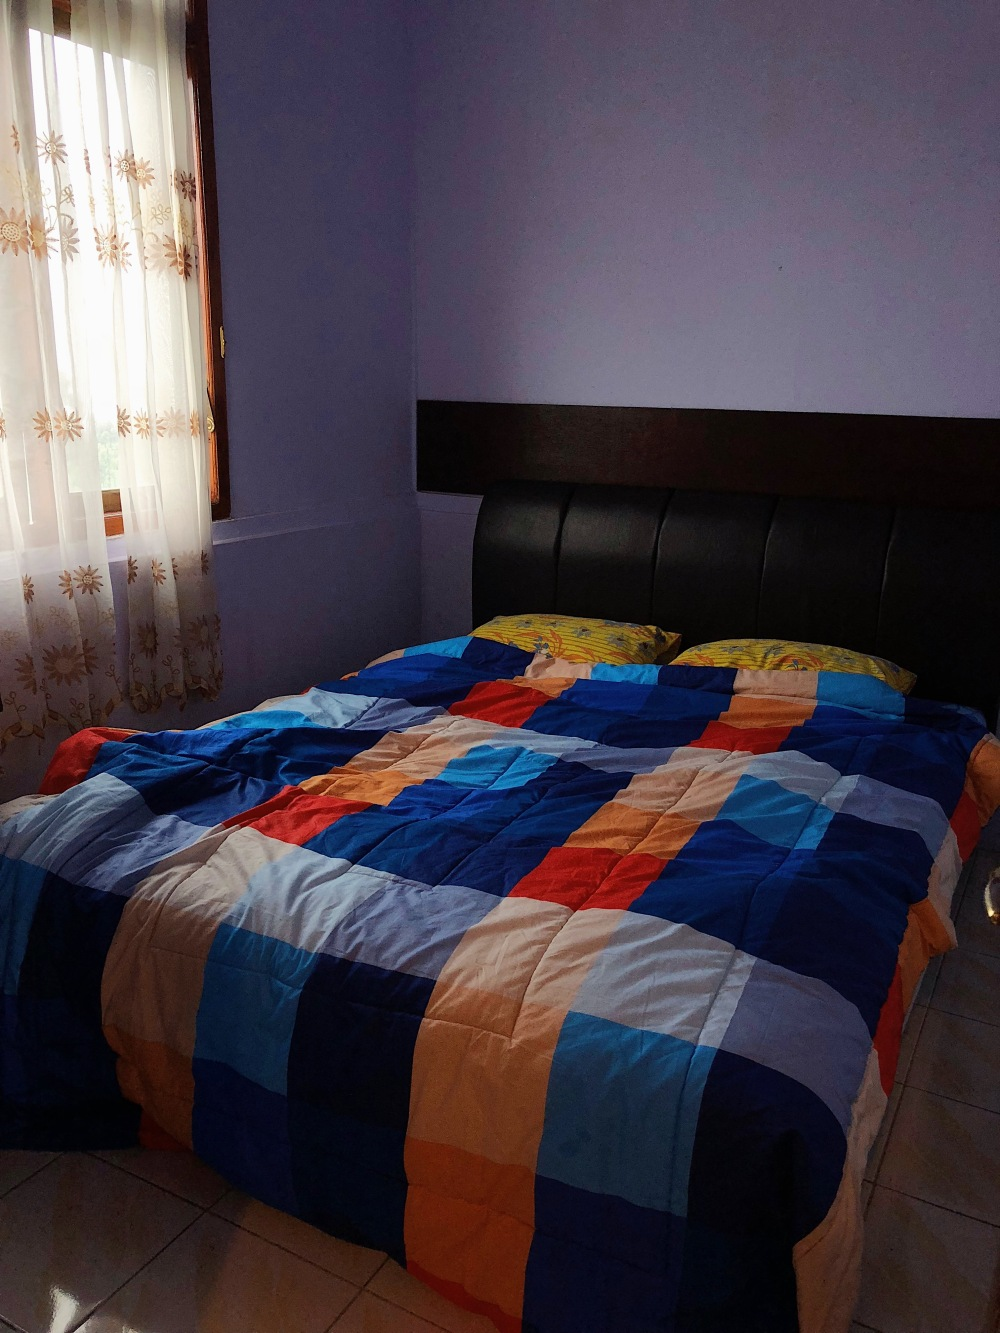 COMFY BED IN BROWN OTIX GUEST HOUSE.